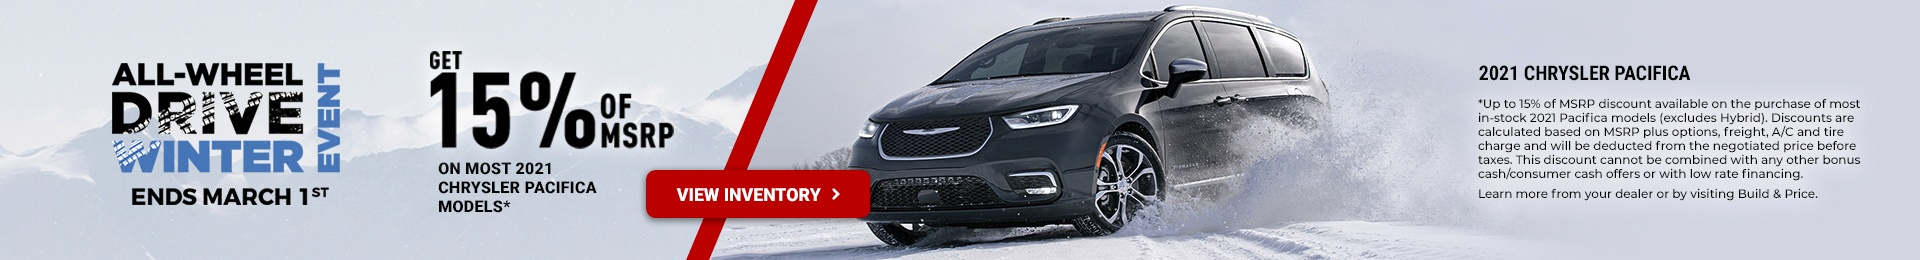 2021 Chrysler Pacifica Promotional Banner